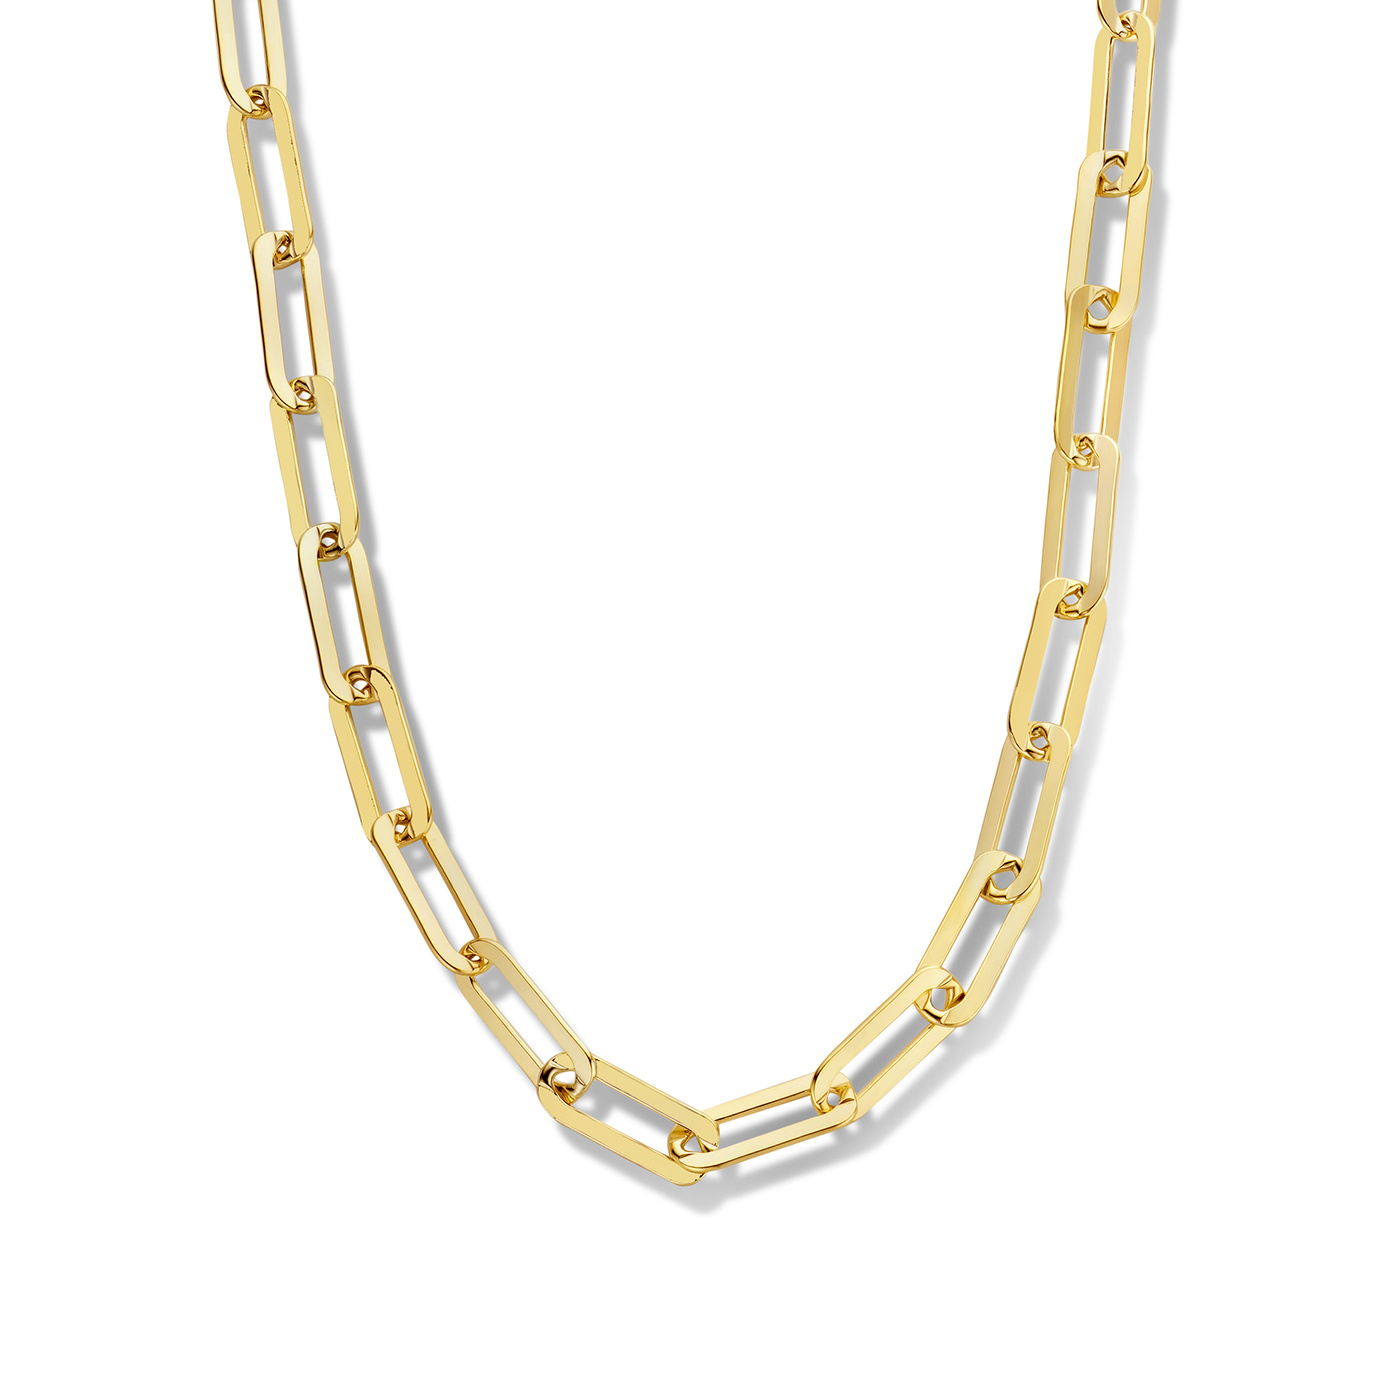 Selected Jewels Emma Jolie collana color oro in argento sterling 925